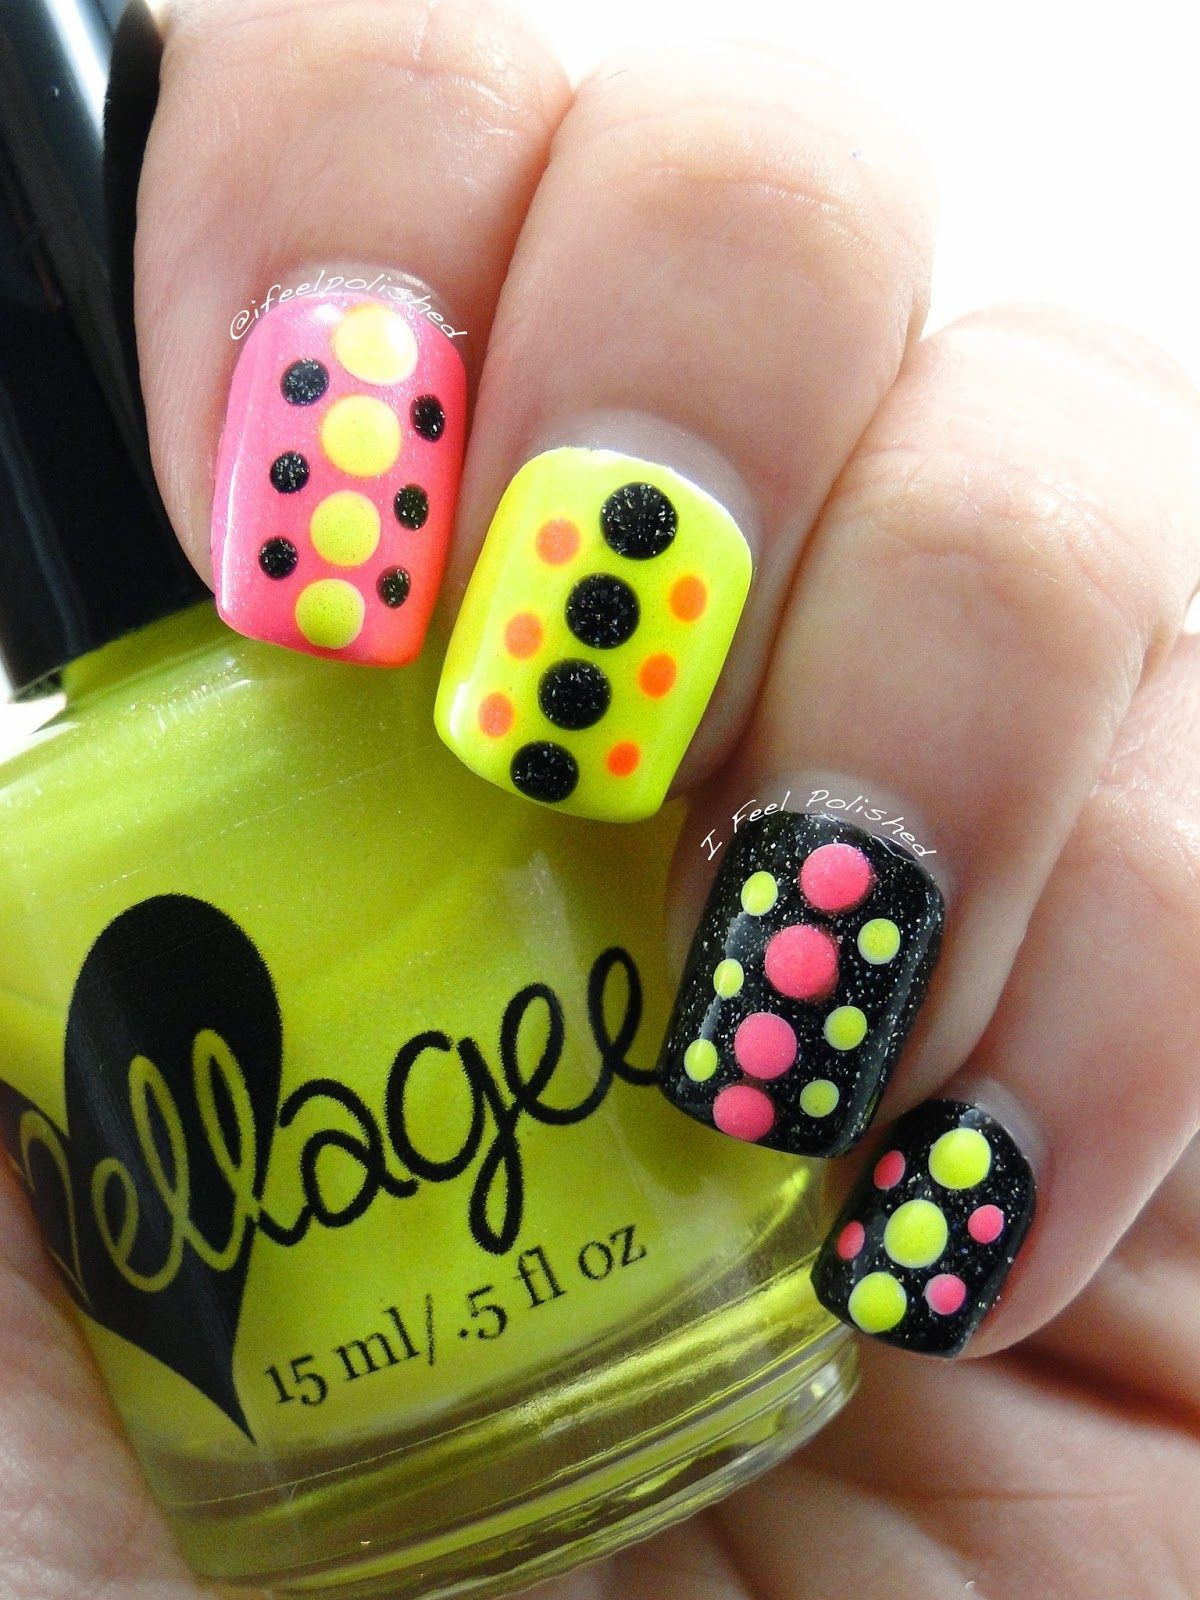 Neon Dottiecure By Ifeelpolished Neon Nails Nails